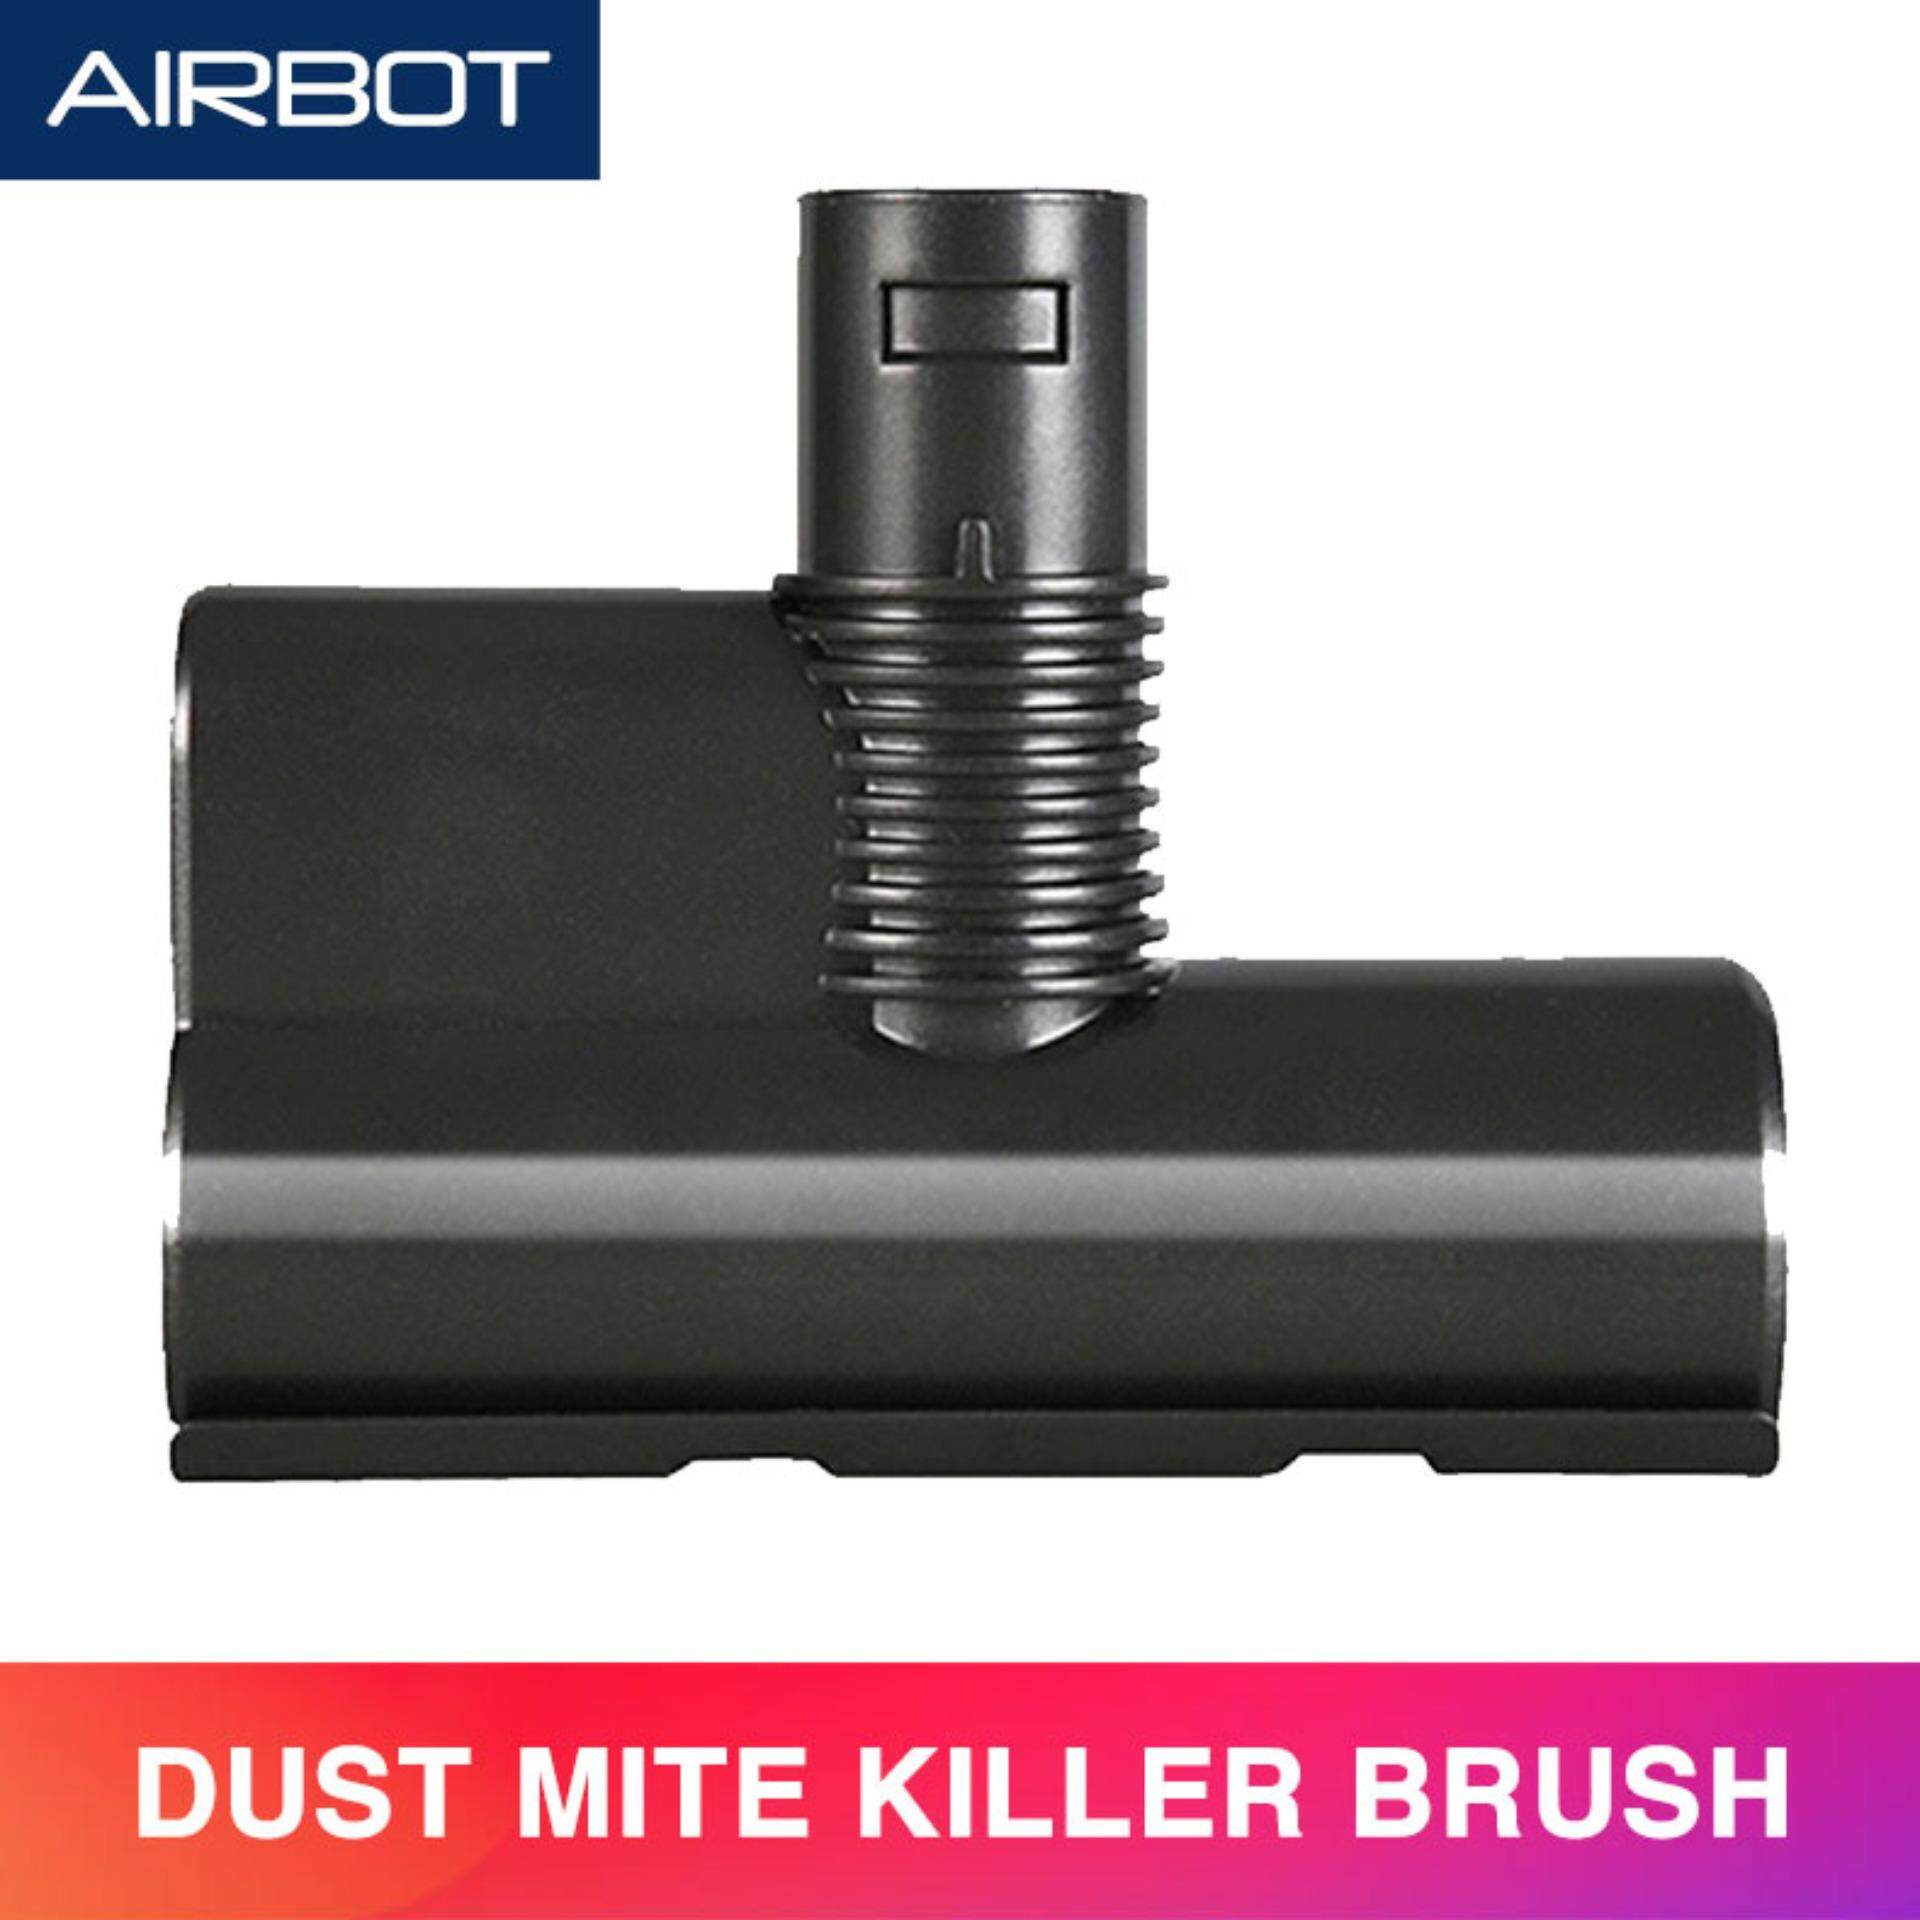 [ Accessories ] Airbot Motorized Mite Brush Vacuum Cleaner Killer For Mattress Sofa Curtain Cloth